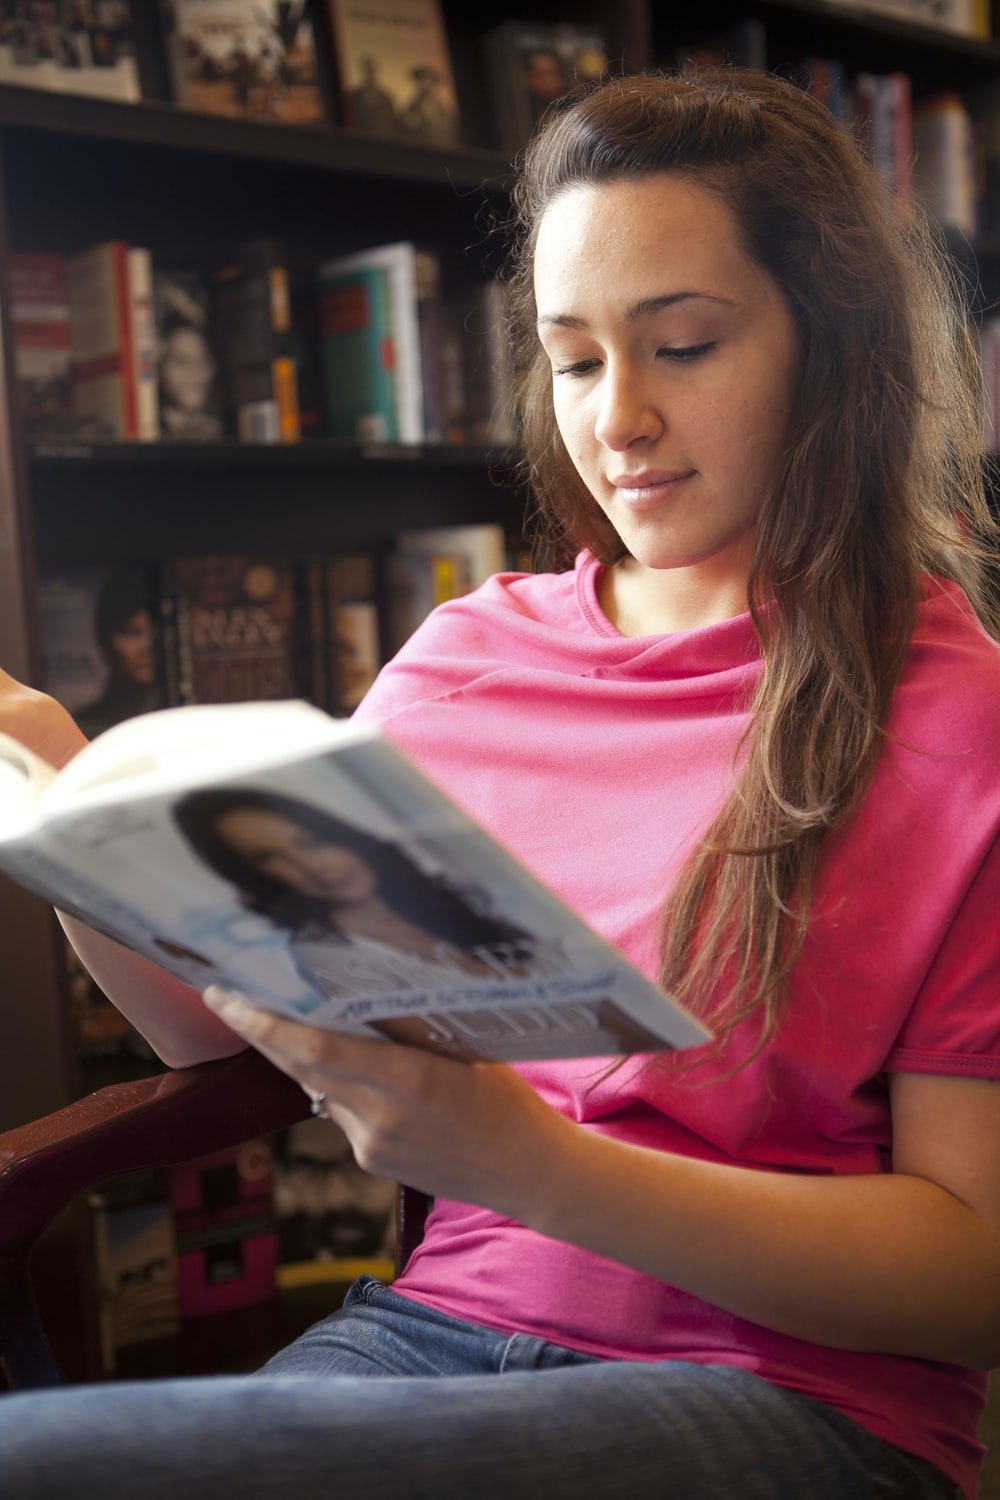 woman in pink crew neck t-shirt holding white book